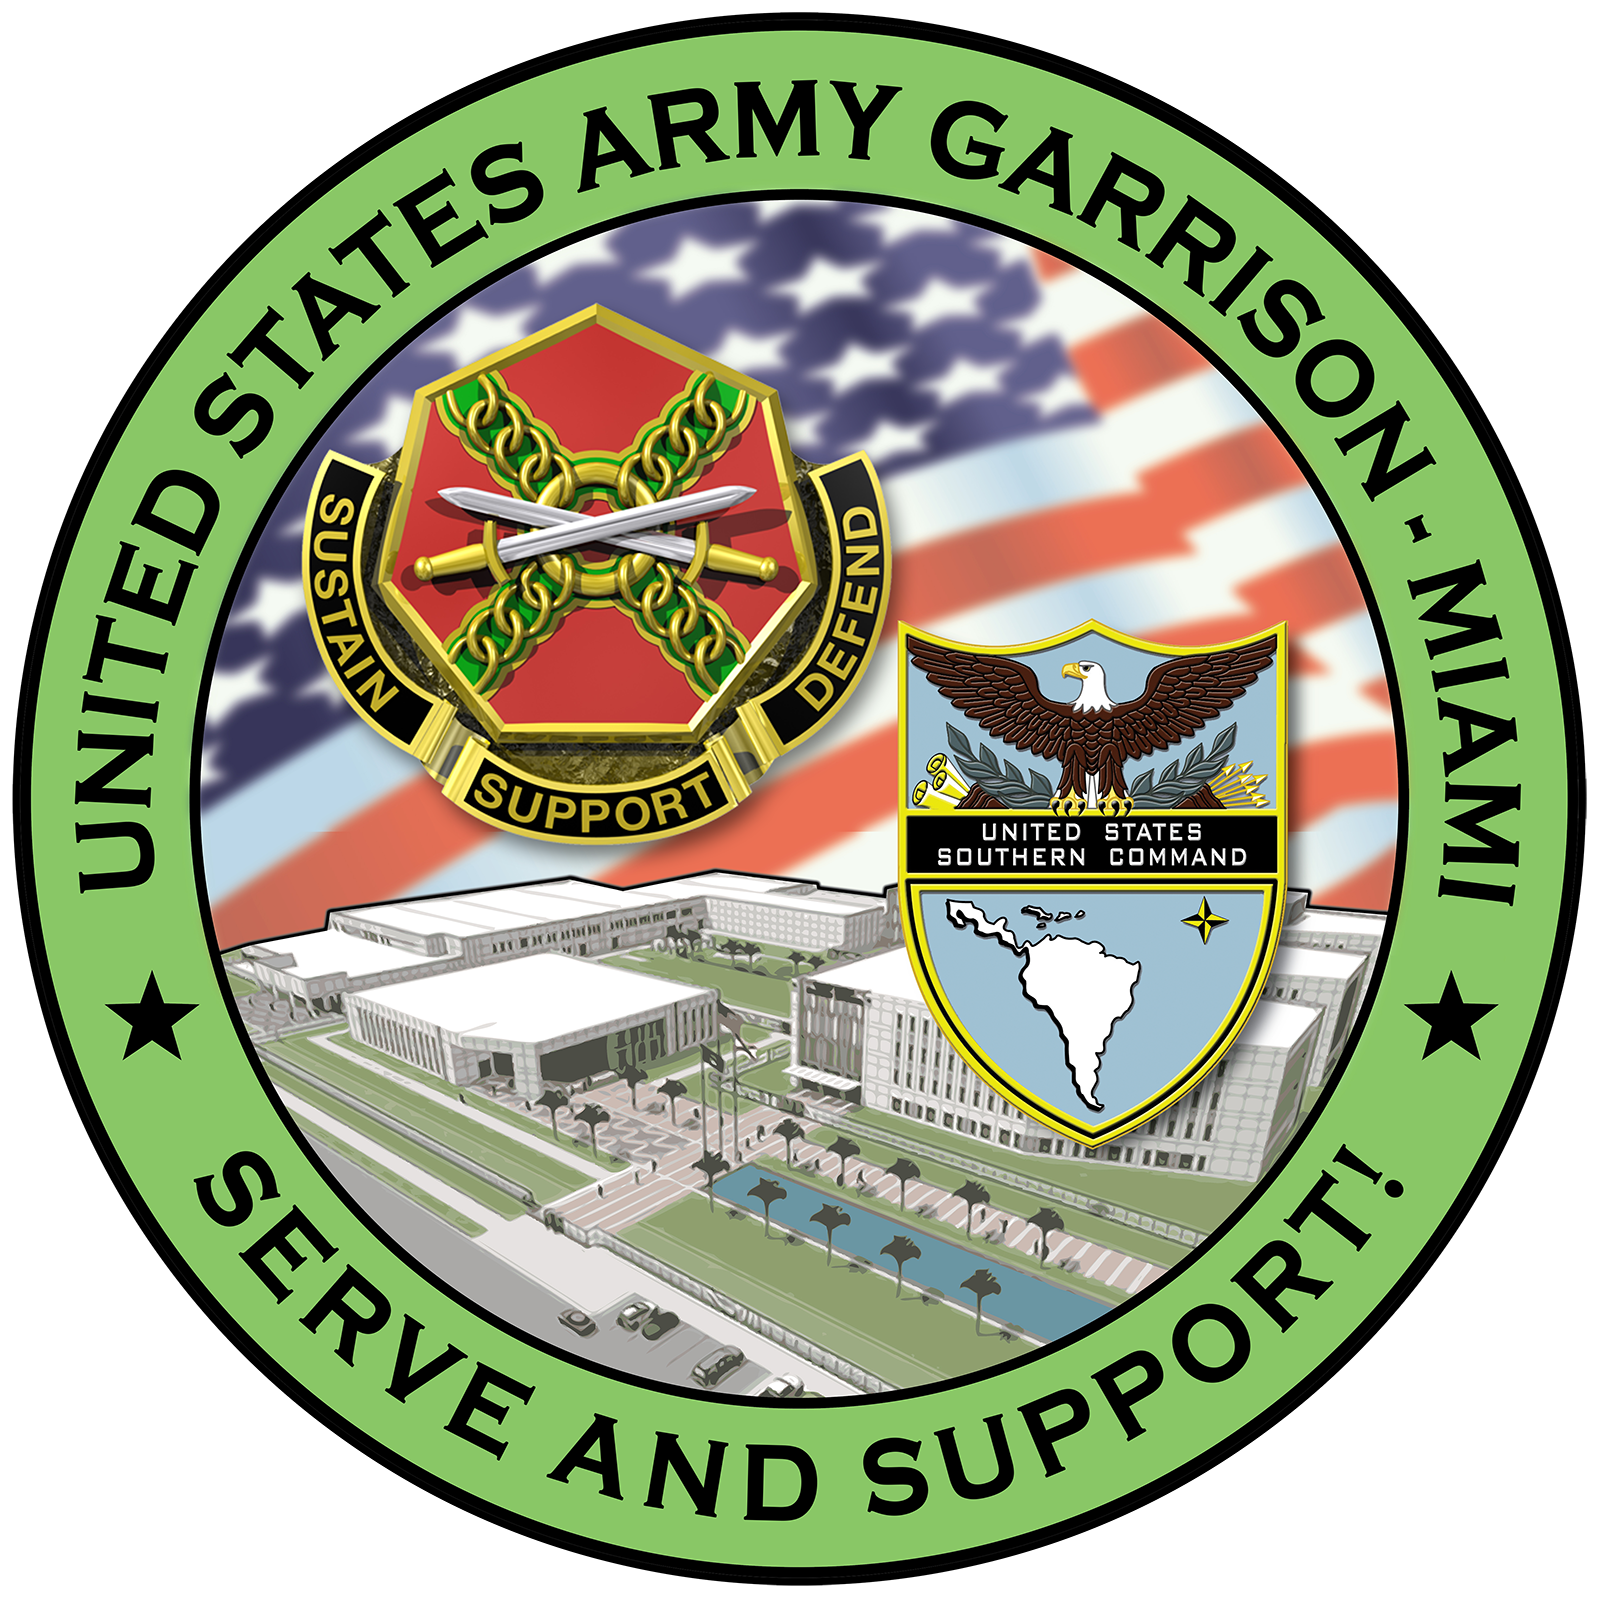 U.S. Army Garrison Miami official command logo